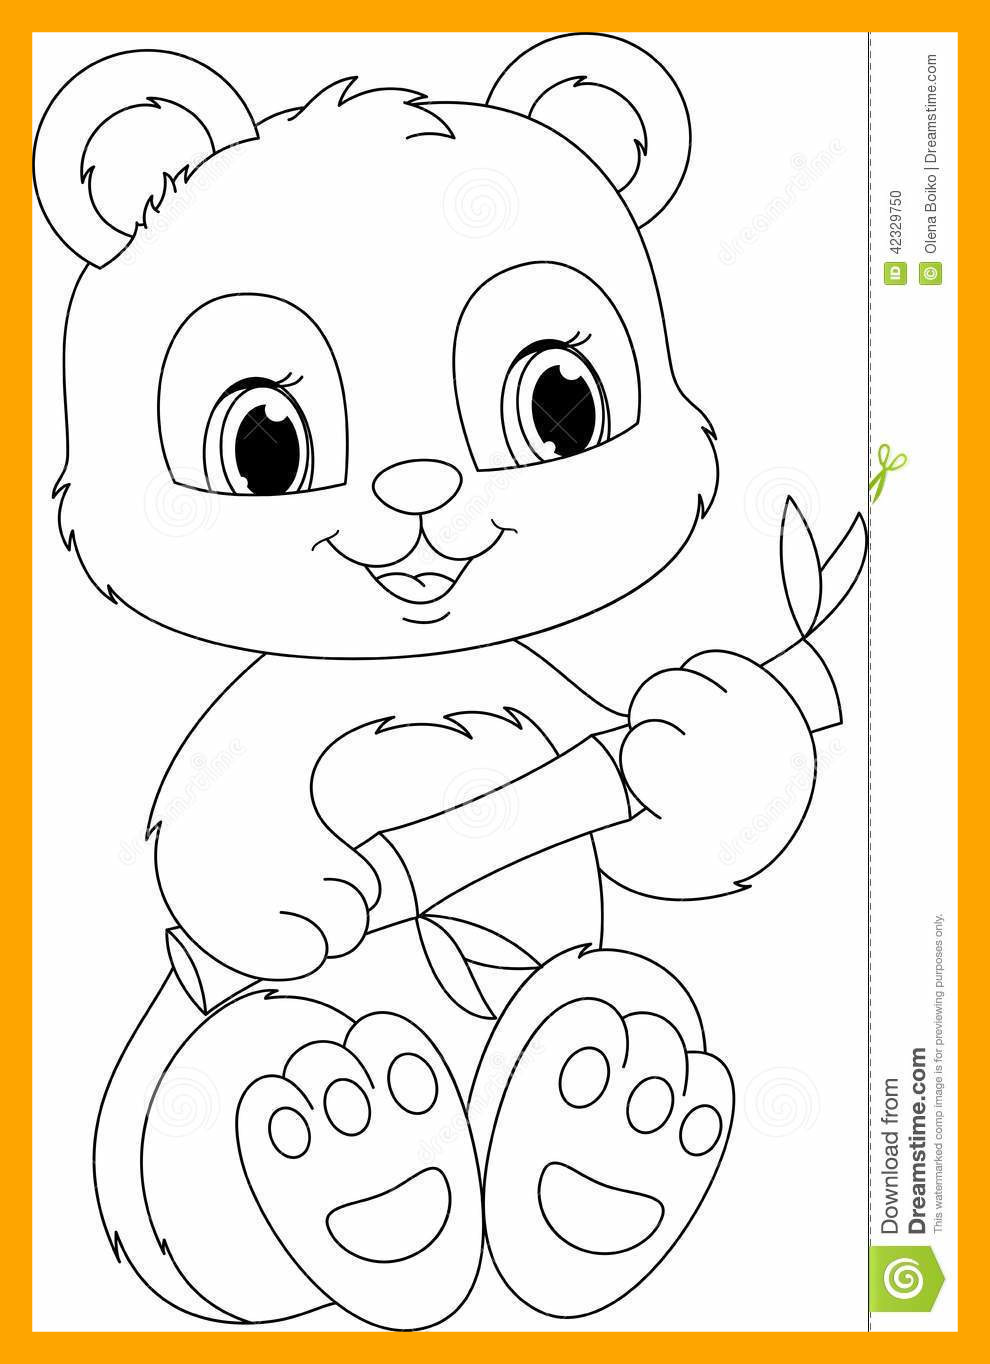 990x1364 Panda Eating Bamboo Coloring Page